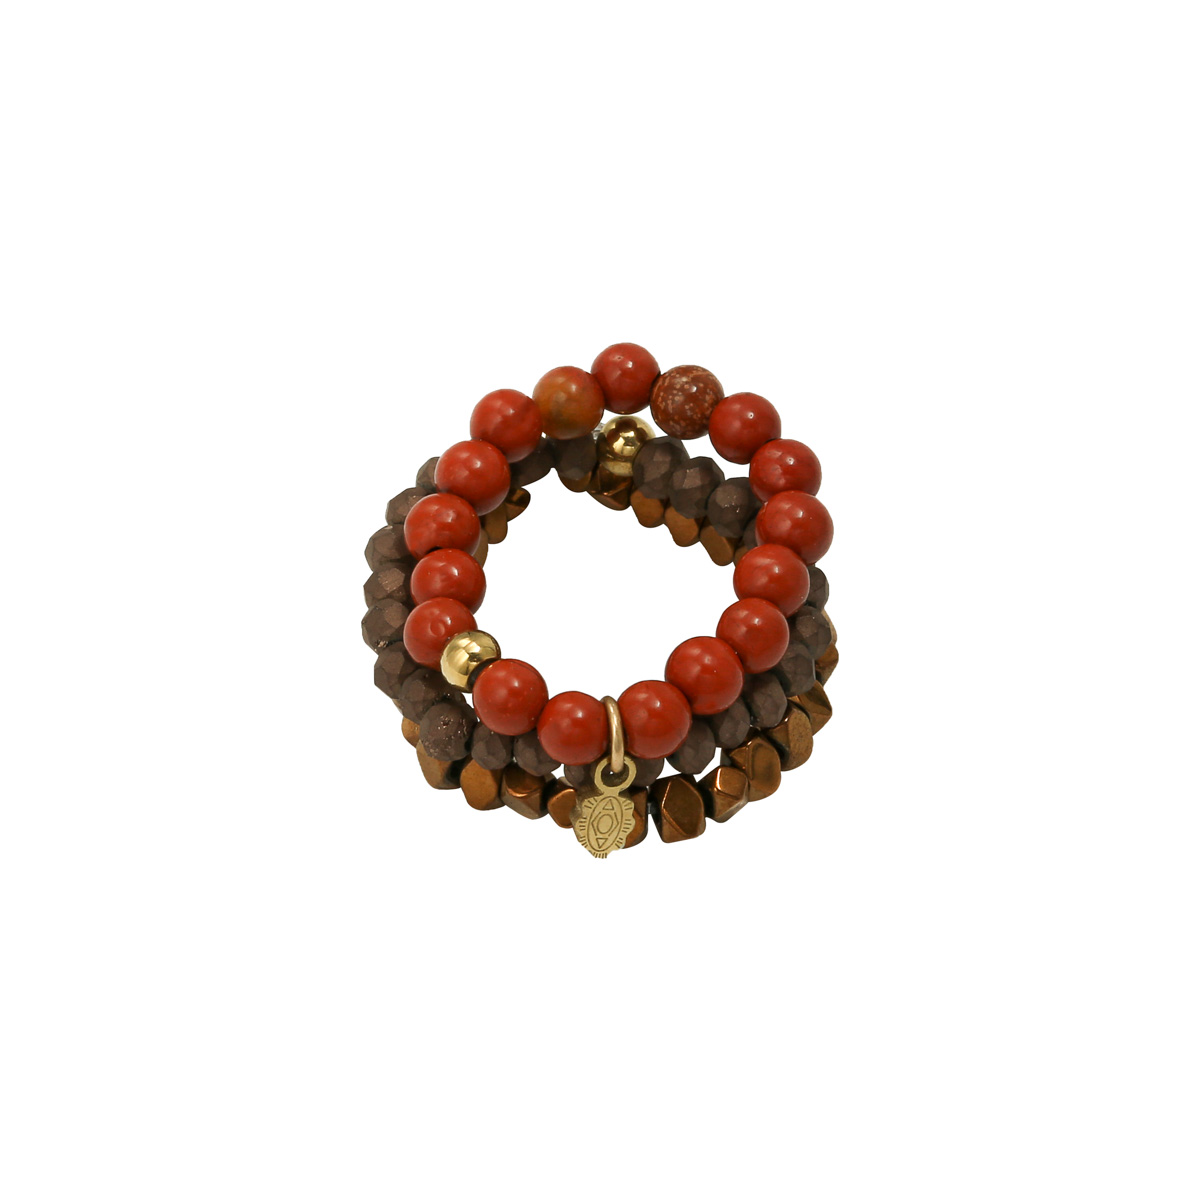 Ring Beads and Charm